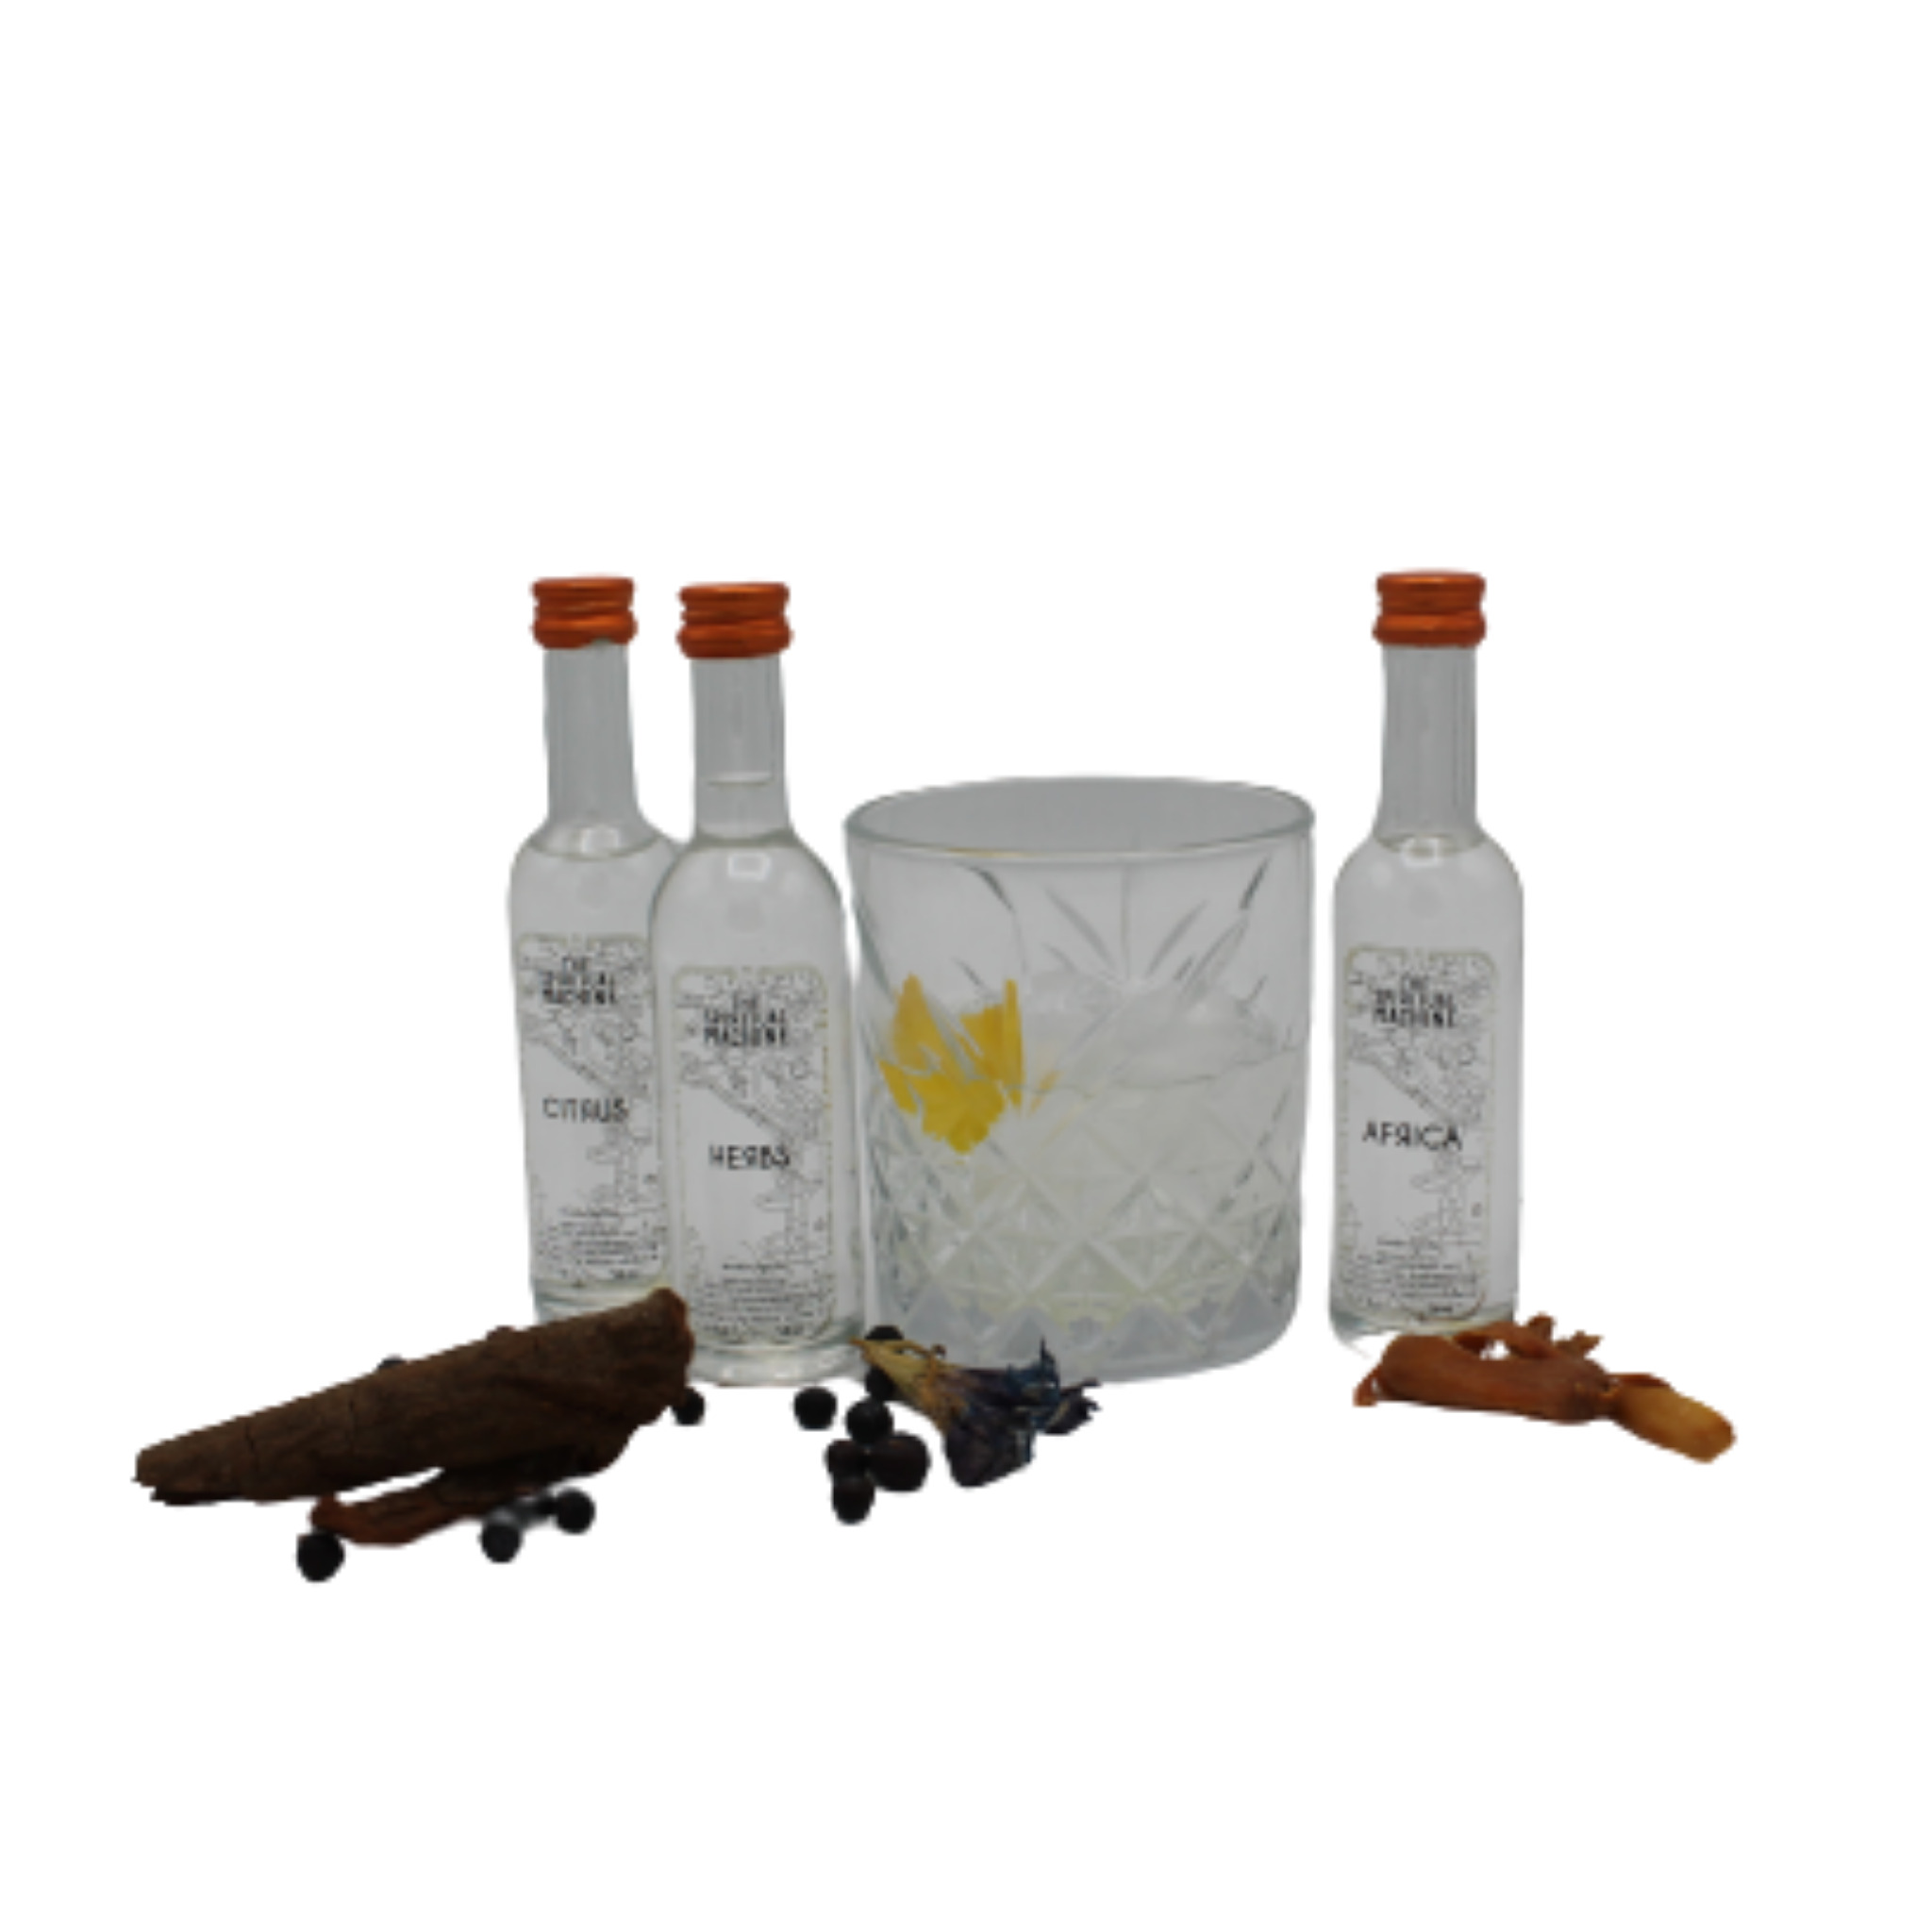 Distilled Spices Note Essense for Gin Top Quality Made in Italy Best Price